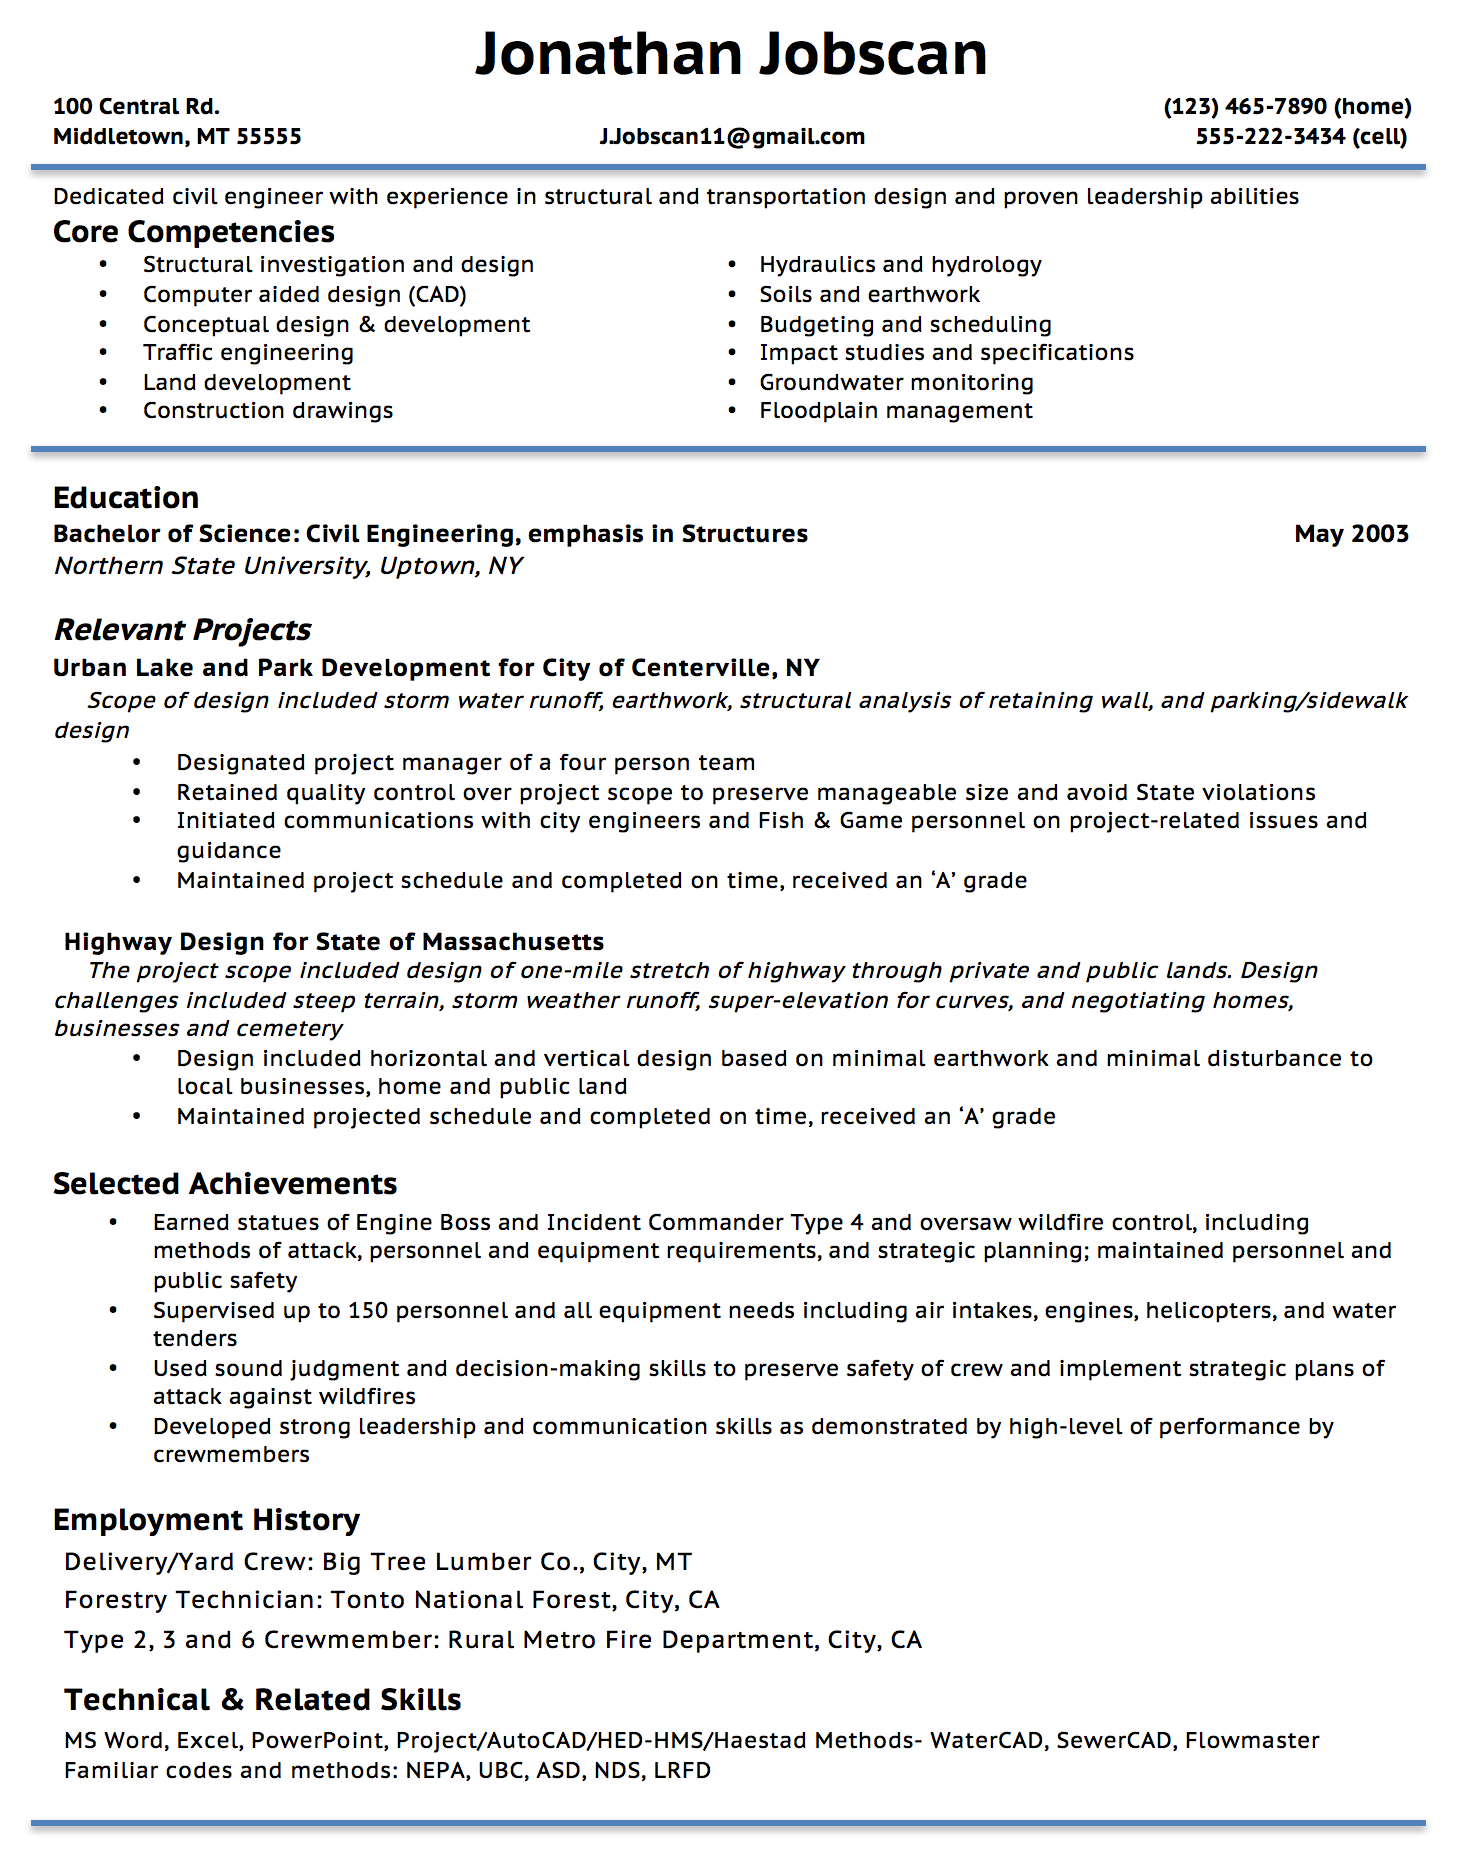 Breakupus Picturesque Social Work Resume With License